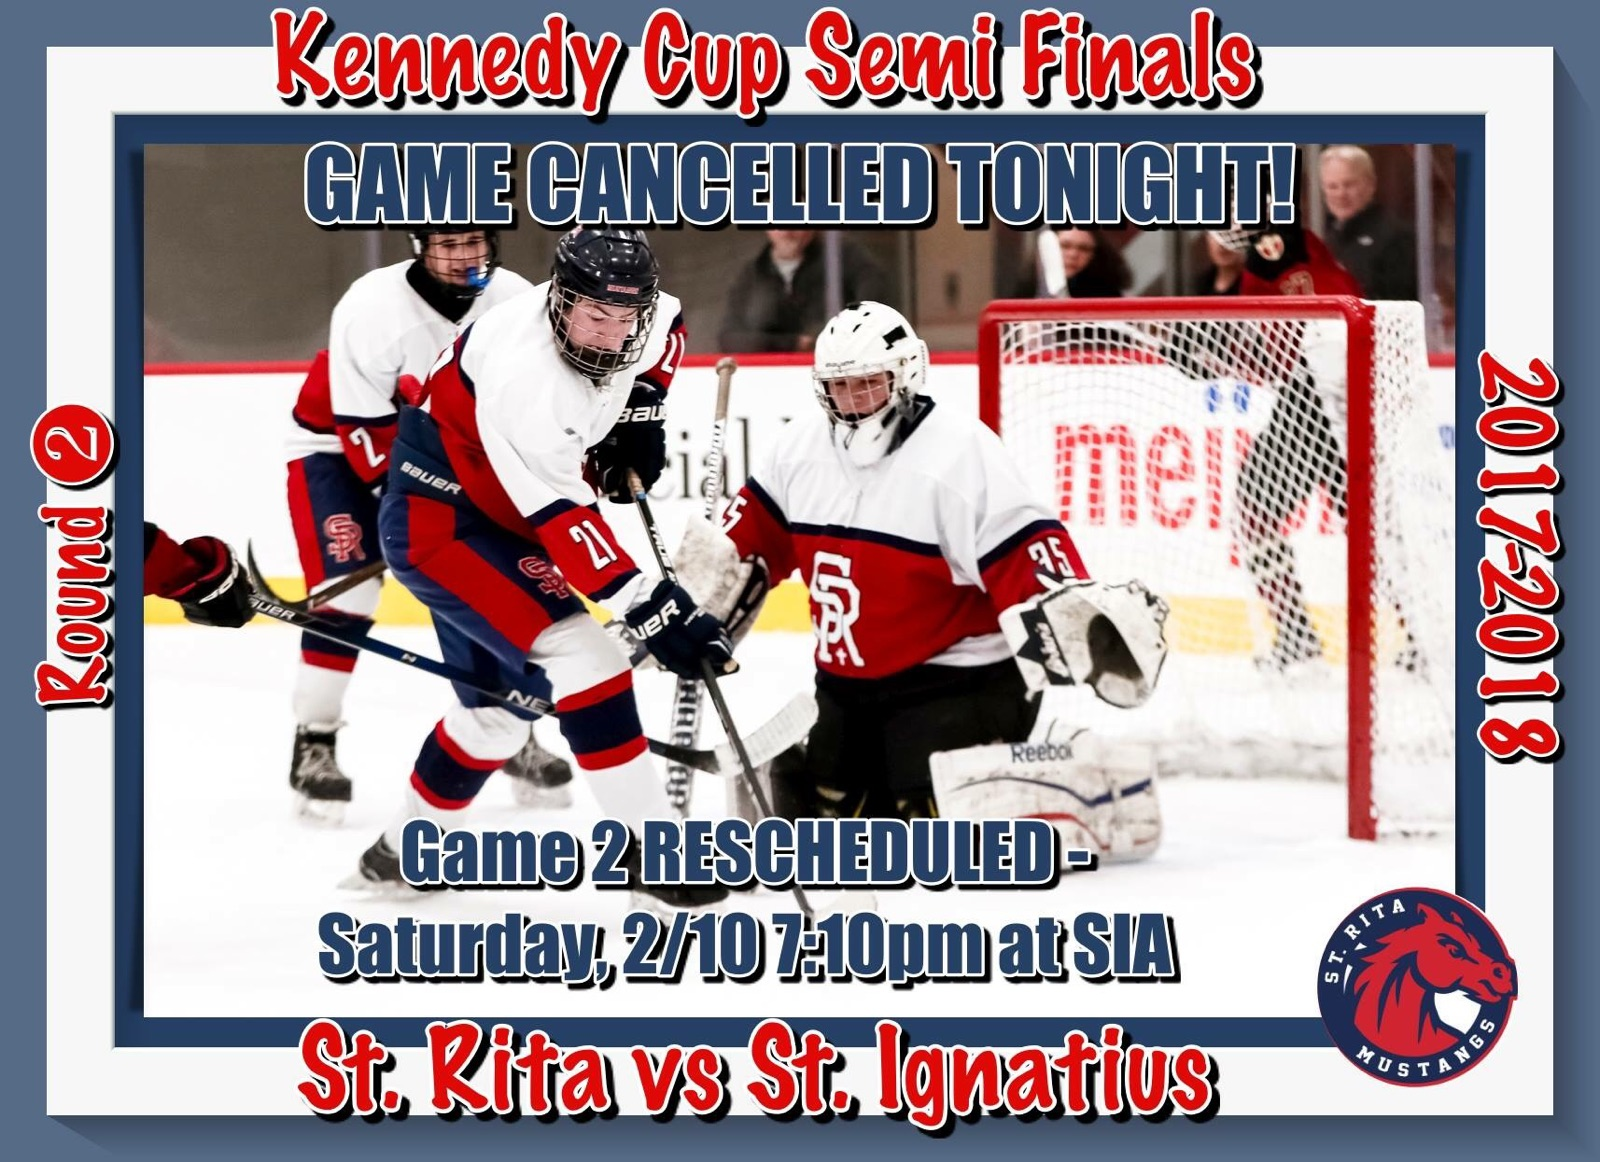 Kennedy Cup Game Cancelled Tonight - Rescheduled for Saturday 2/10